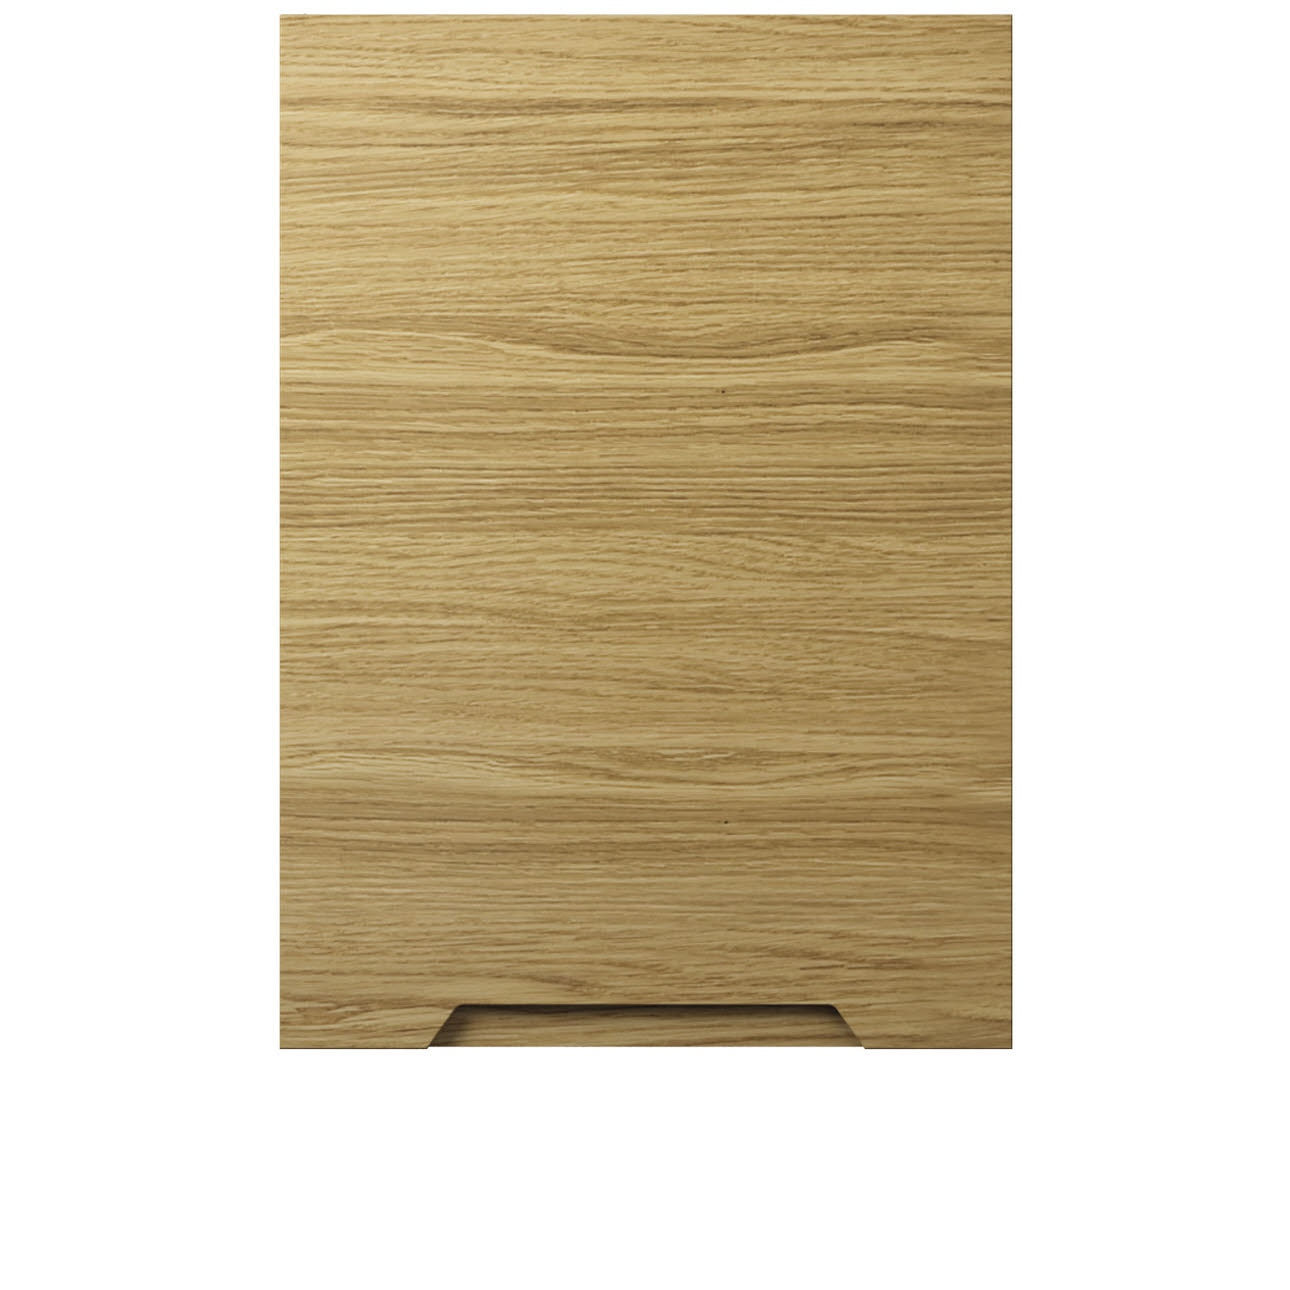 Tendens Nature Oak Veneer | HTH